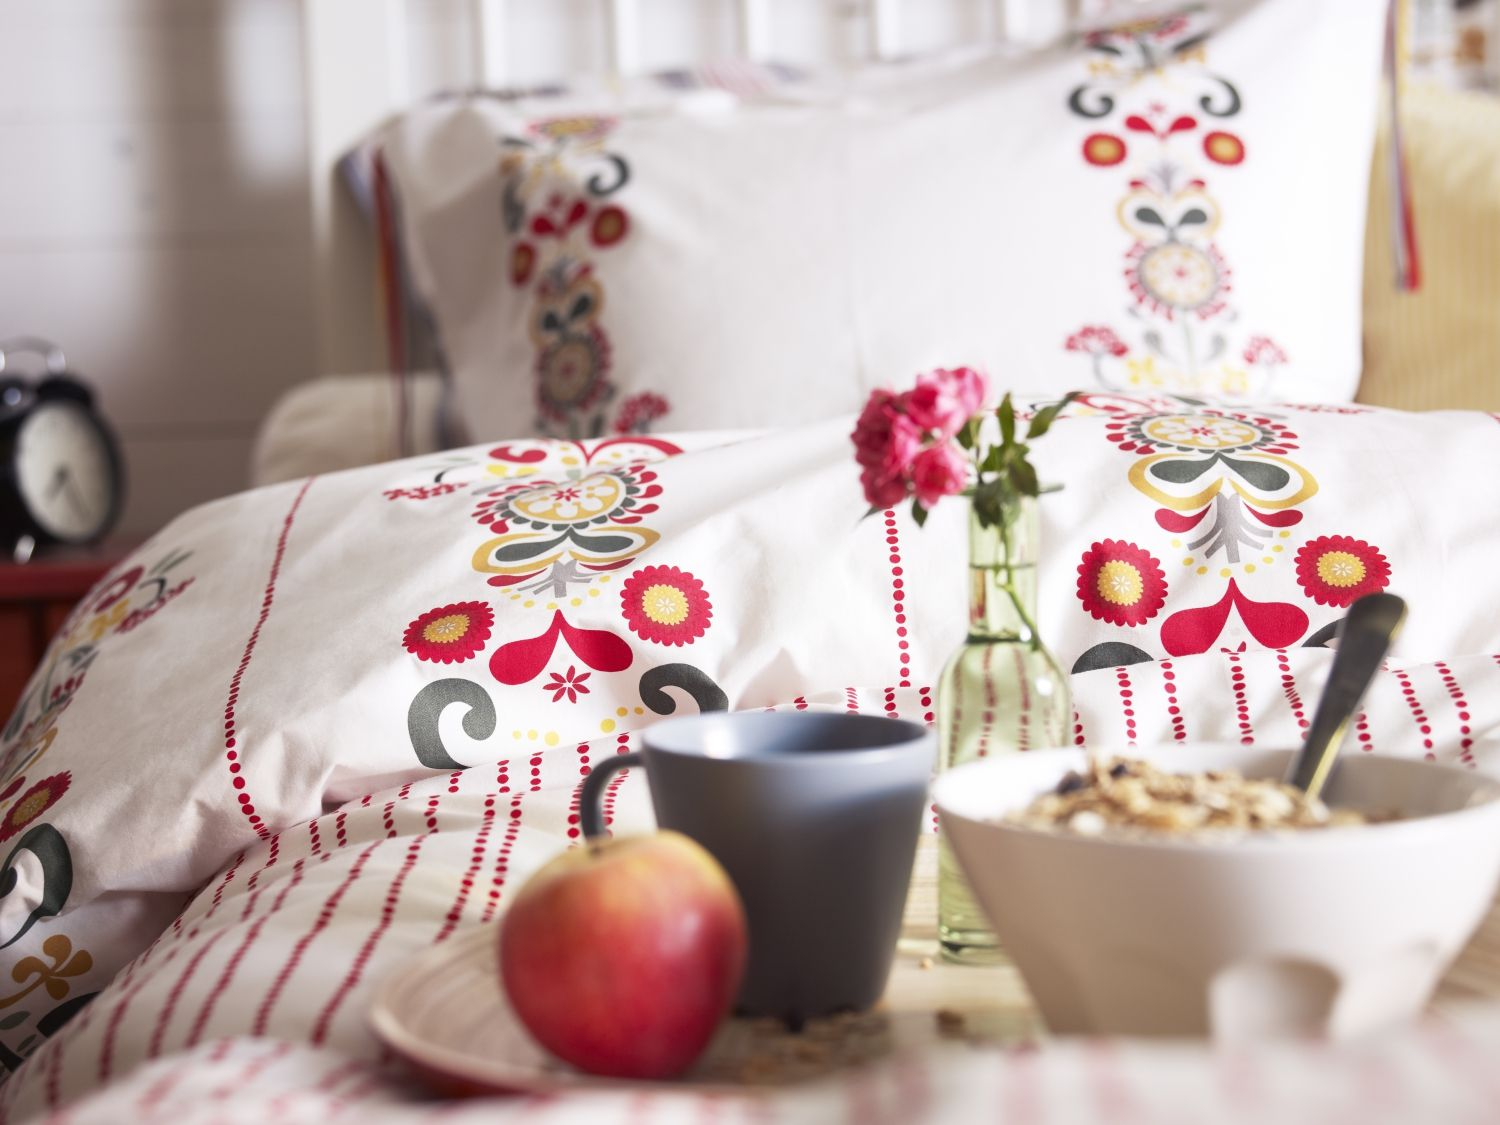 Wake up to a splash of Autumnal colour with ÅKERKULLA bedding, inspired by Swedish floral patterns.